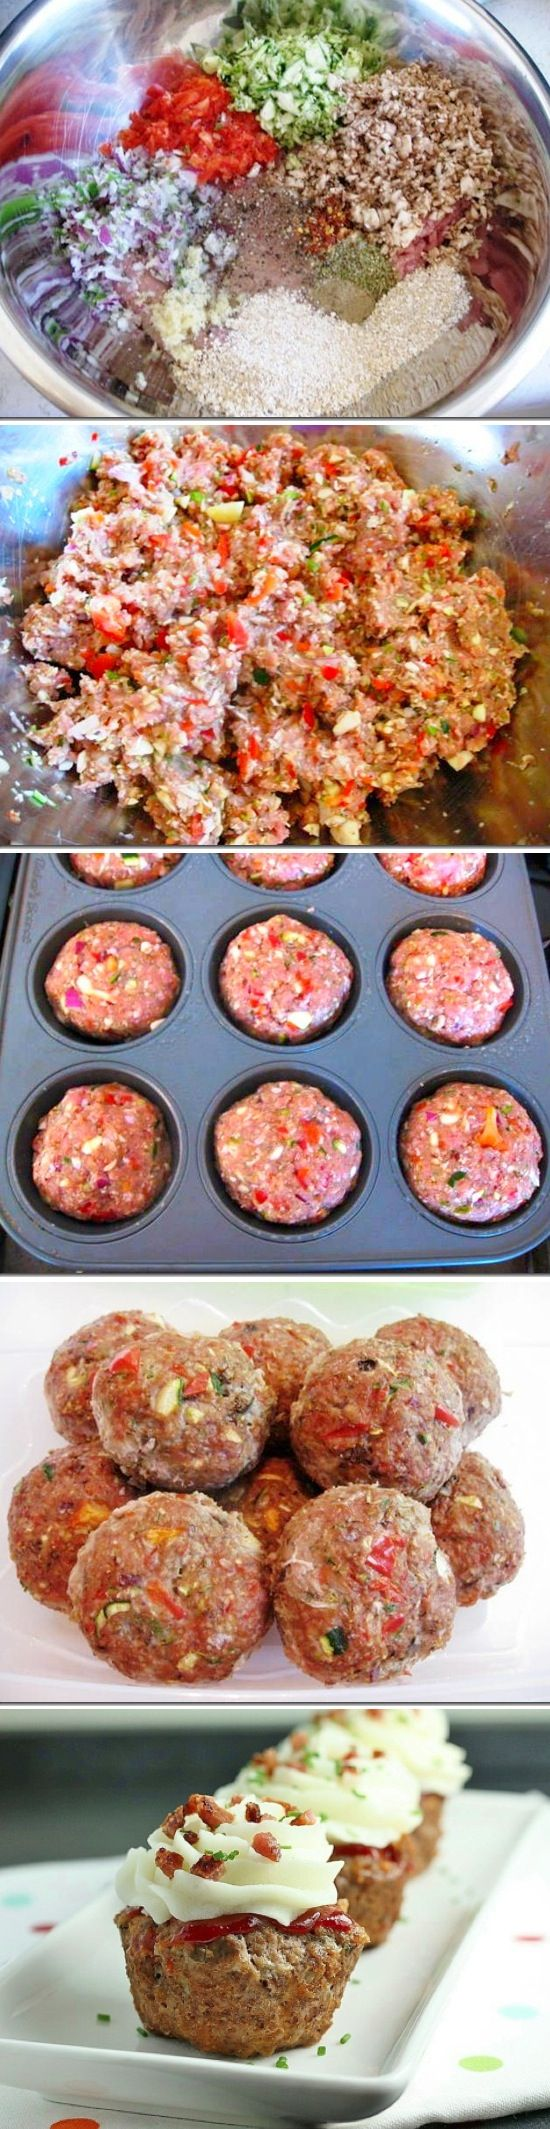 Meatloaf Cupcakes made with turkey and veggies